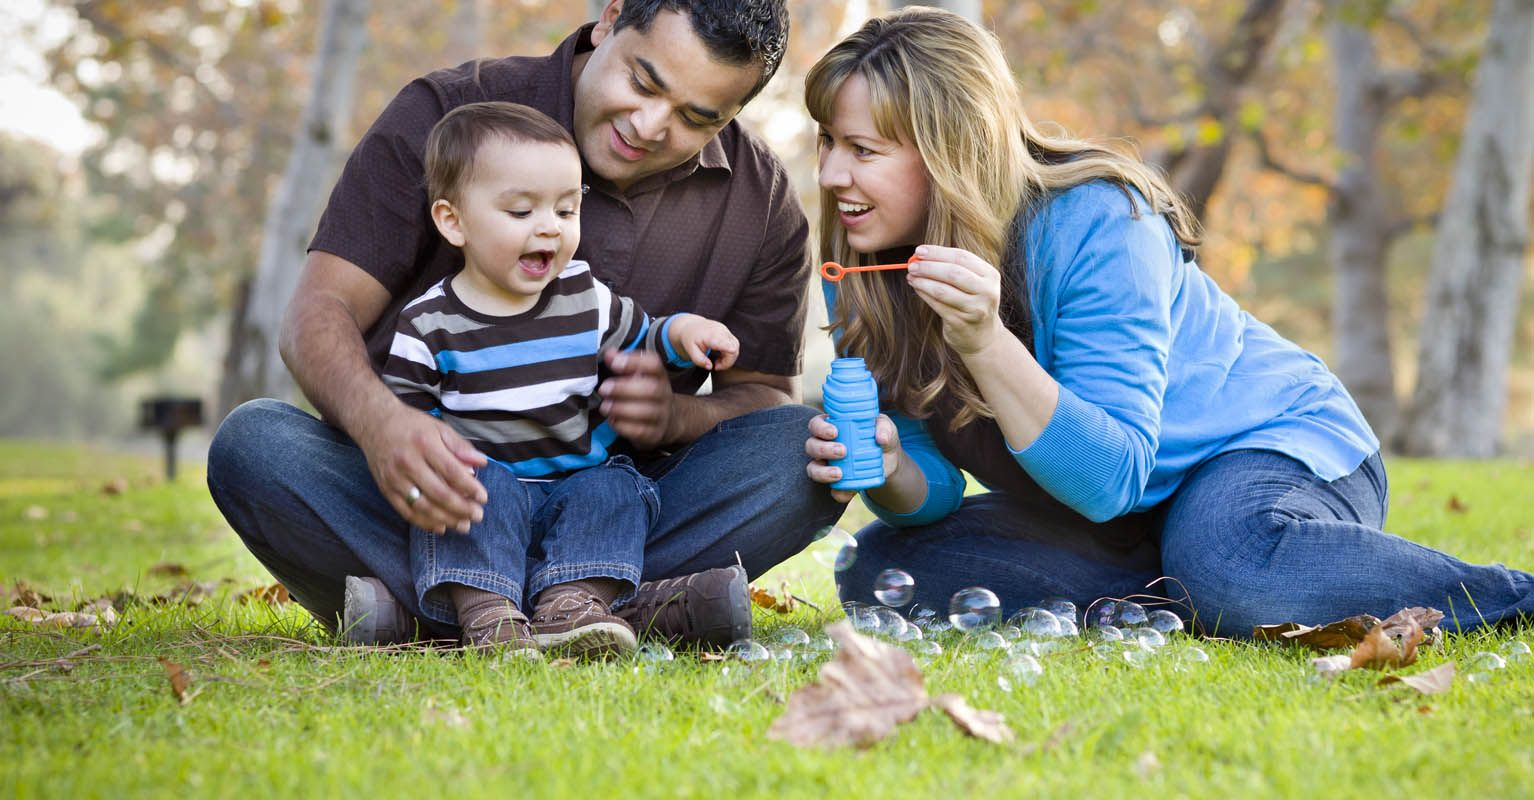 Life Insurance doesn't have to be confusing or expensive